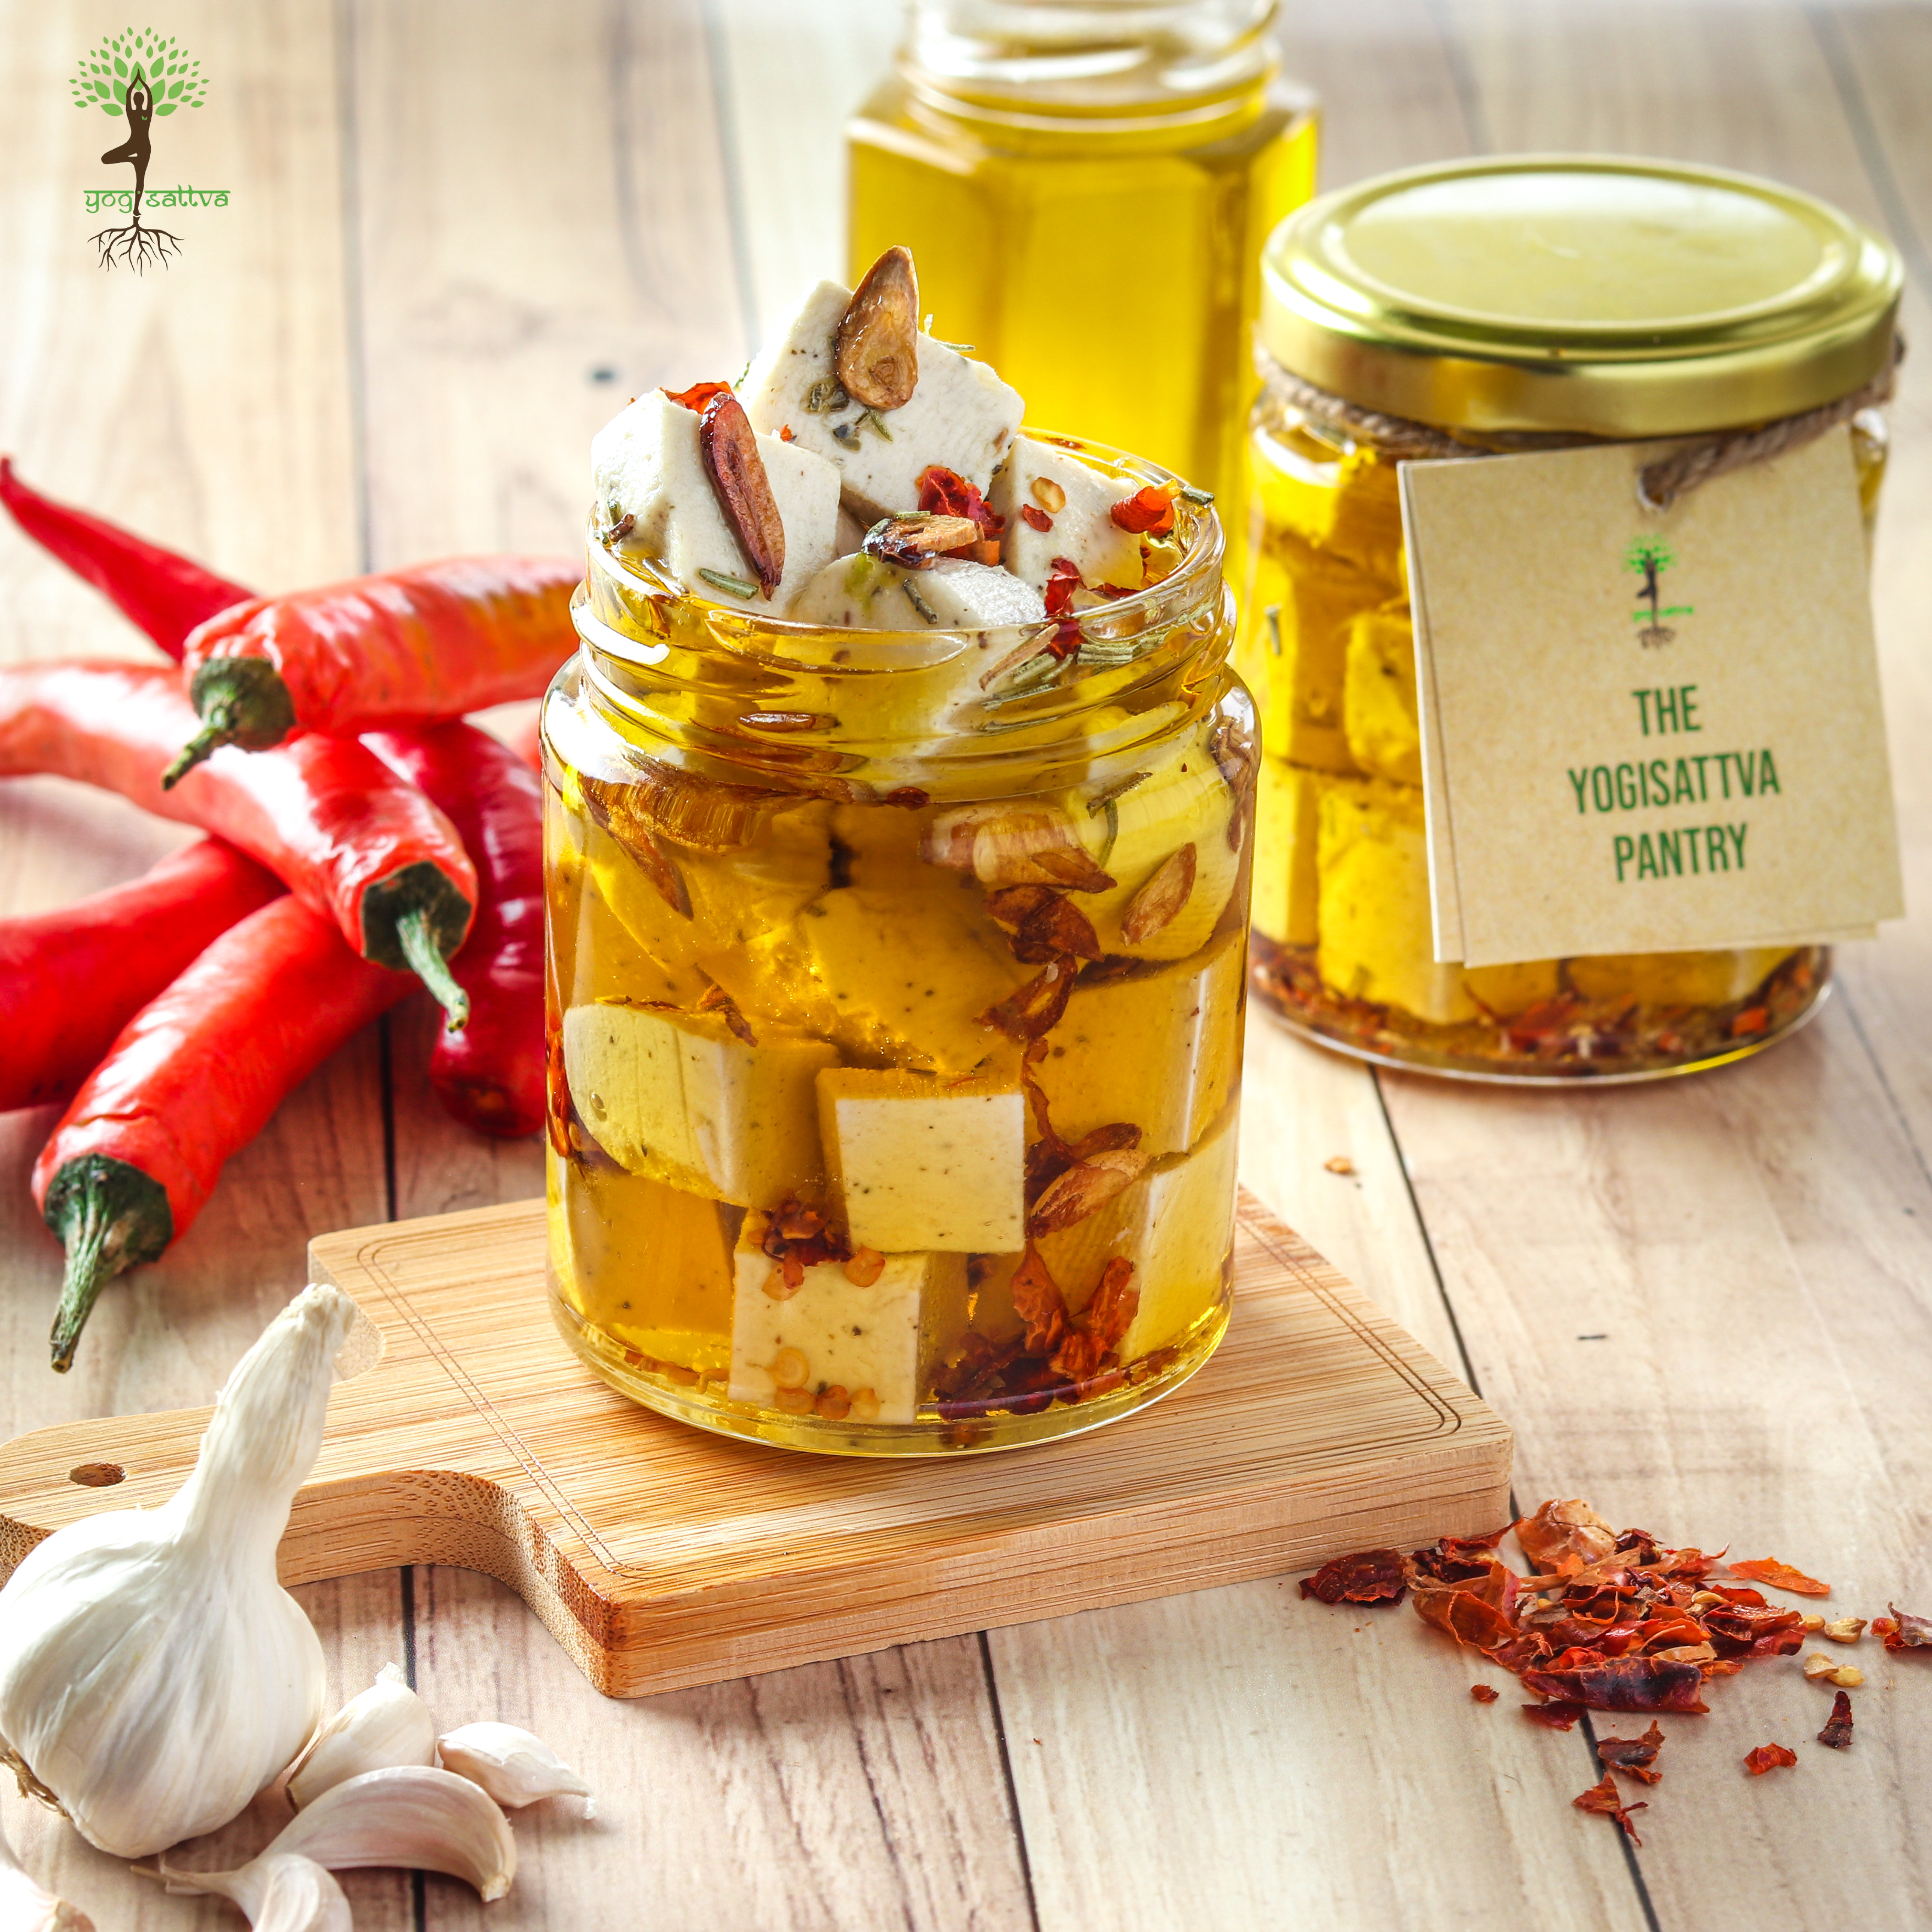 You Feta Believe it, Chilli Garlic (150gms)